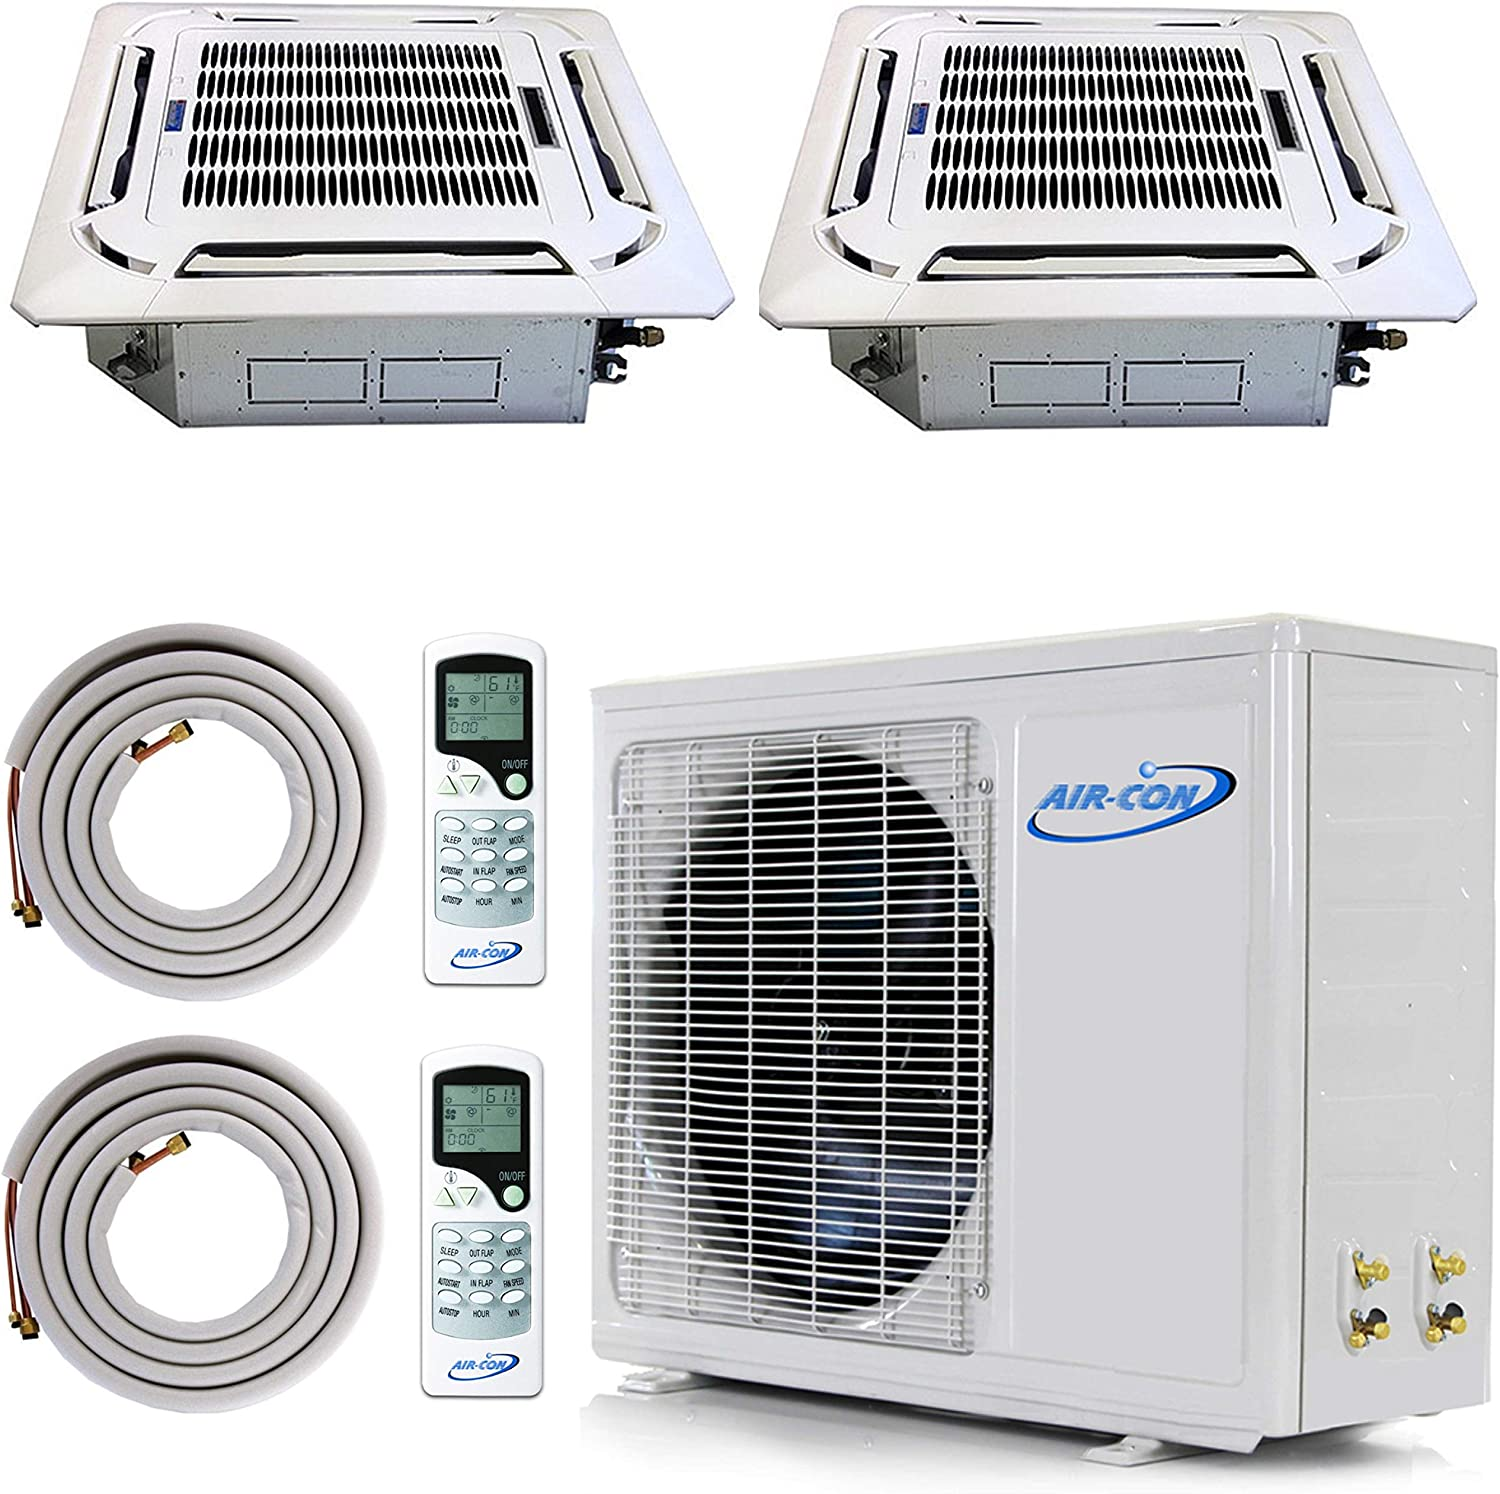 Multi Zone Mini Split Ductless Air Conditioner - Dual 2 Zone 12000 + 12000-Pre-Charged Inverter Compressor - Includes Two Free 25' Linesets - Ceiling Cassette - US Parts